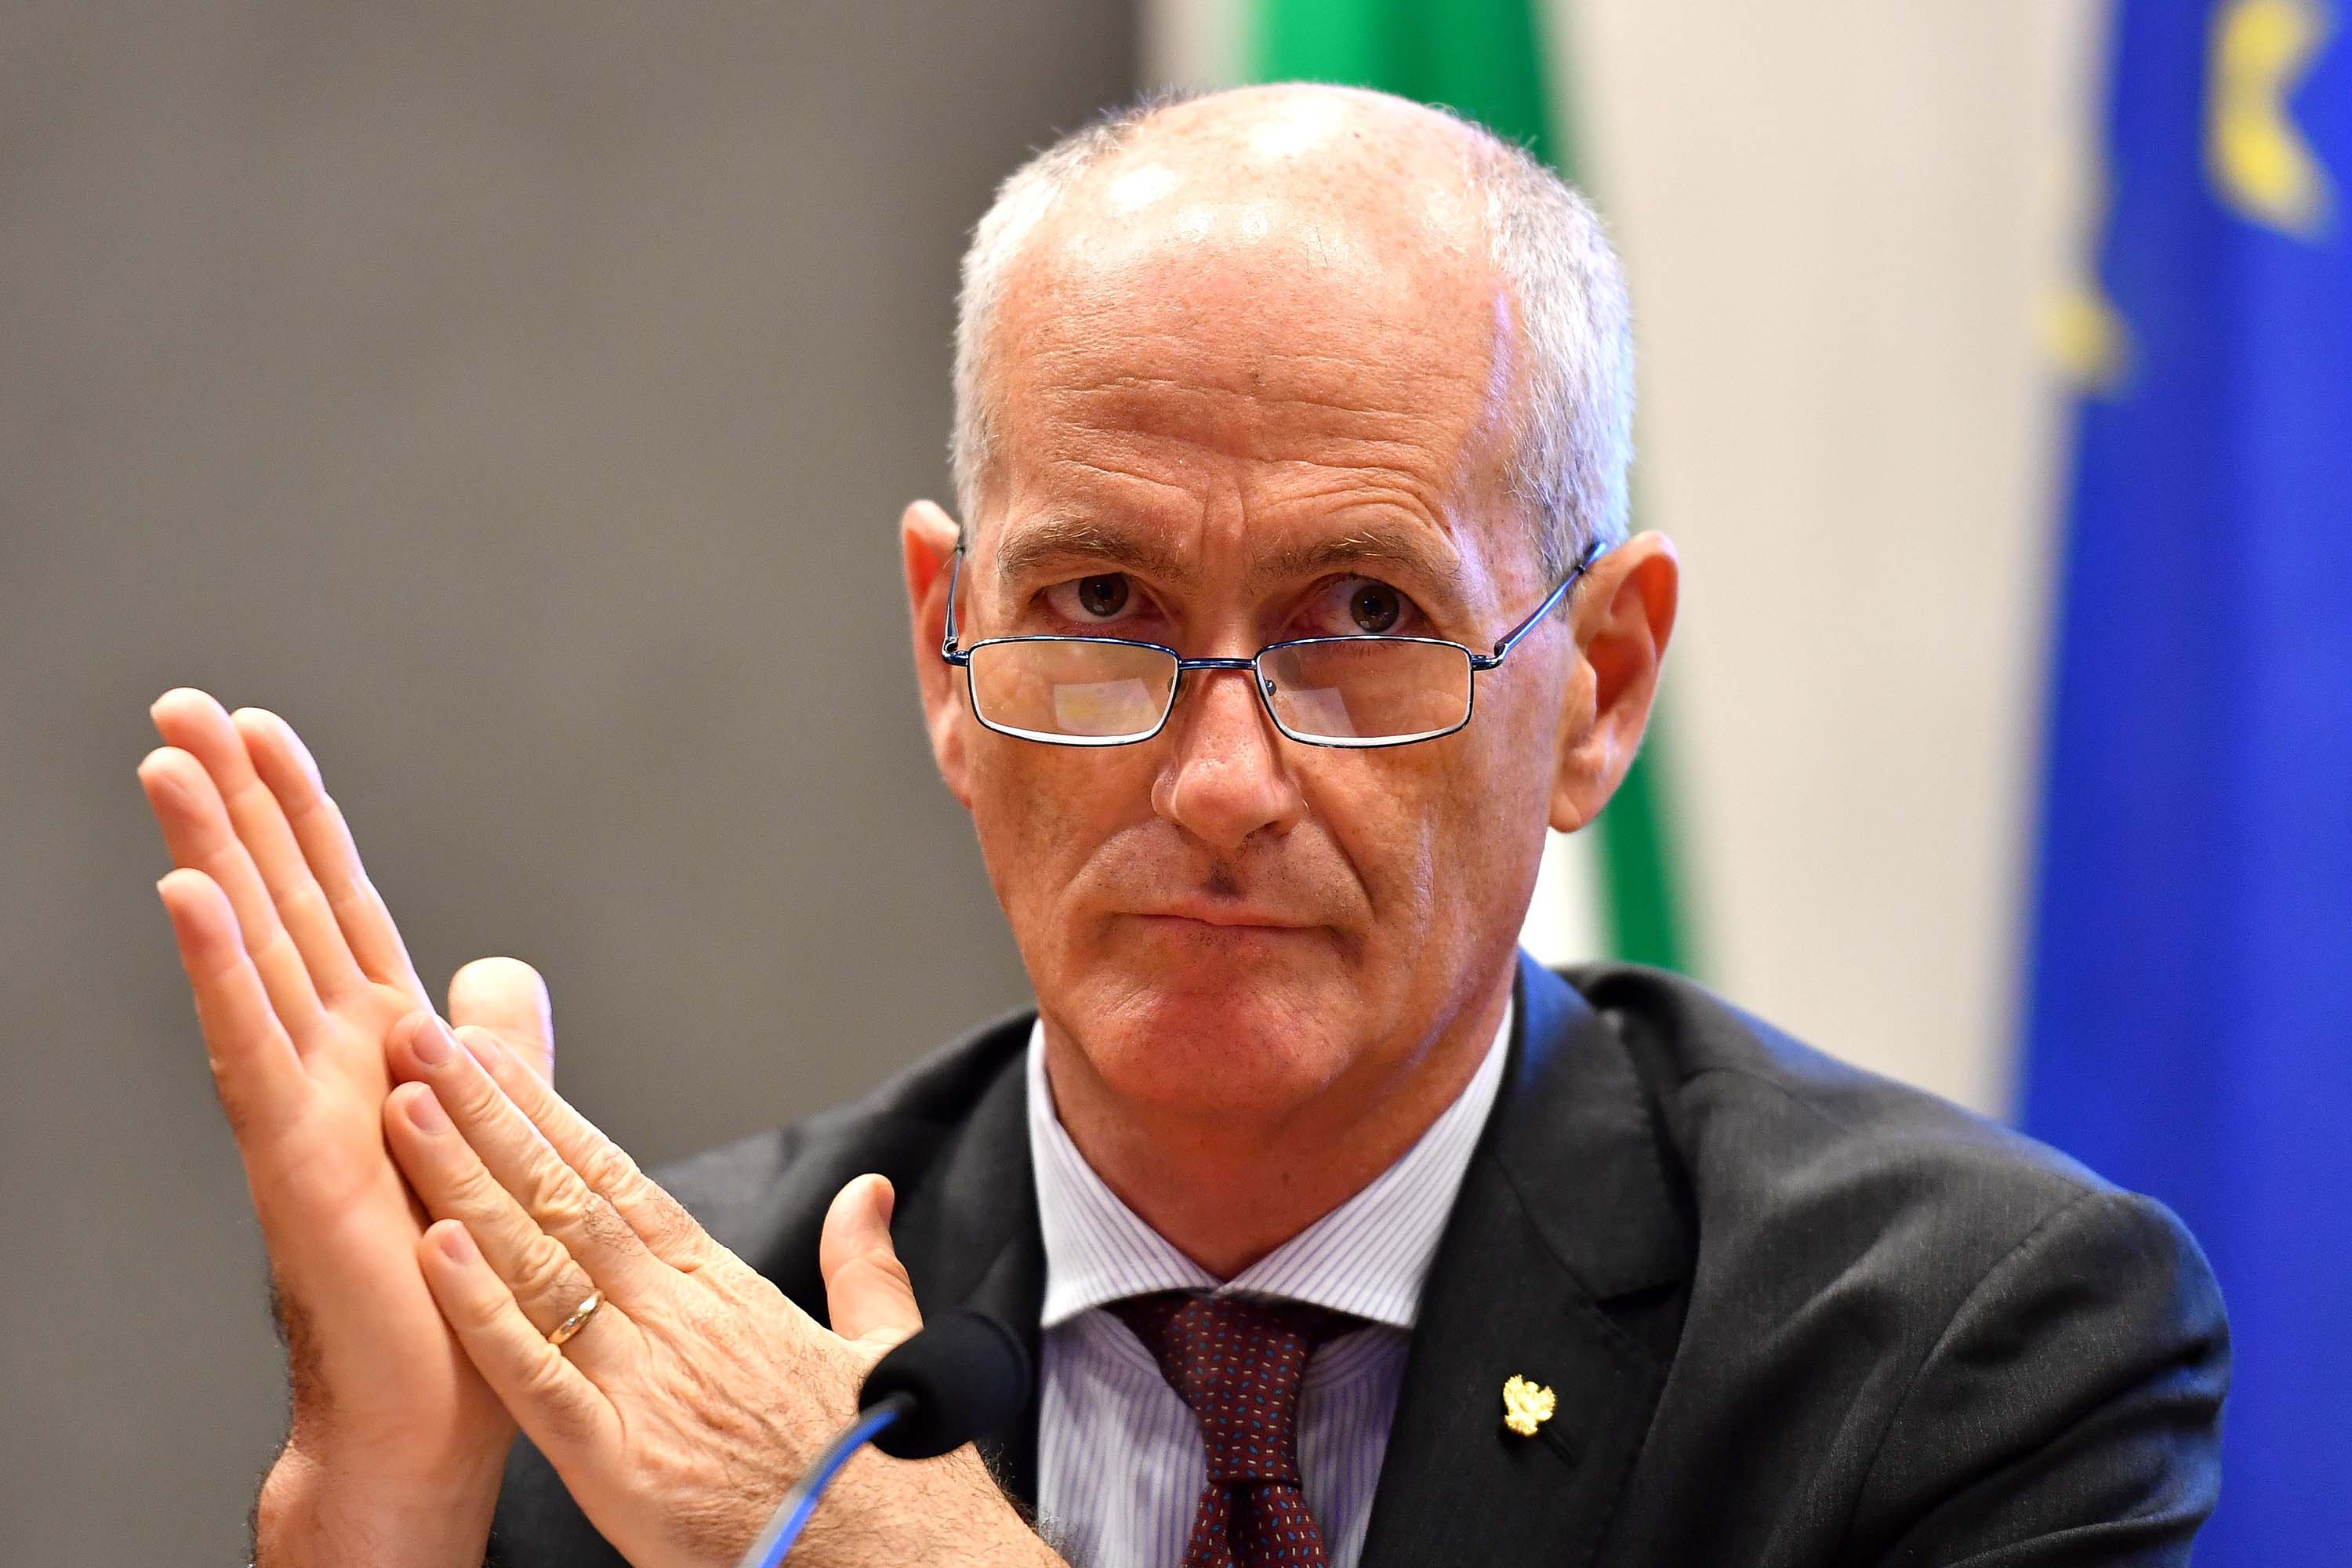 Head of Italian Police Franco Gabrielli addresses a press conference in Rome, Italy, in July 2018.